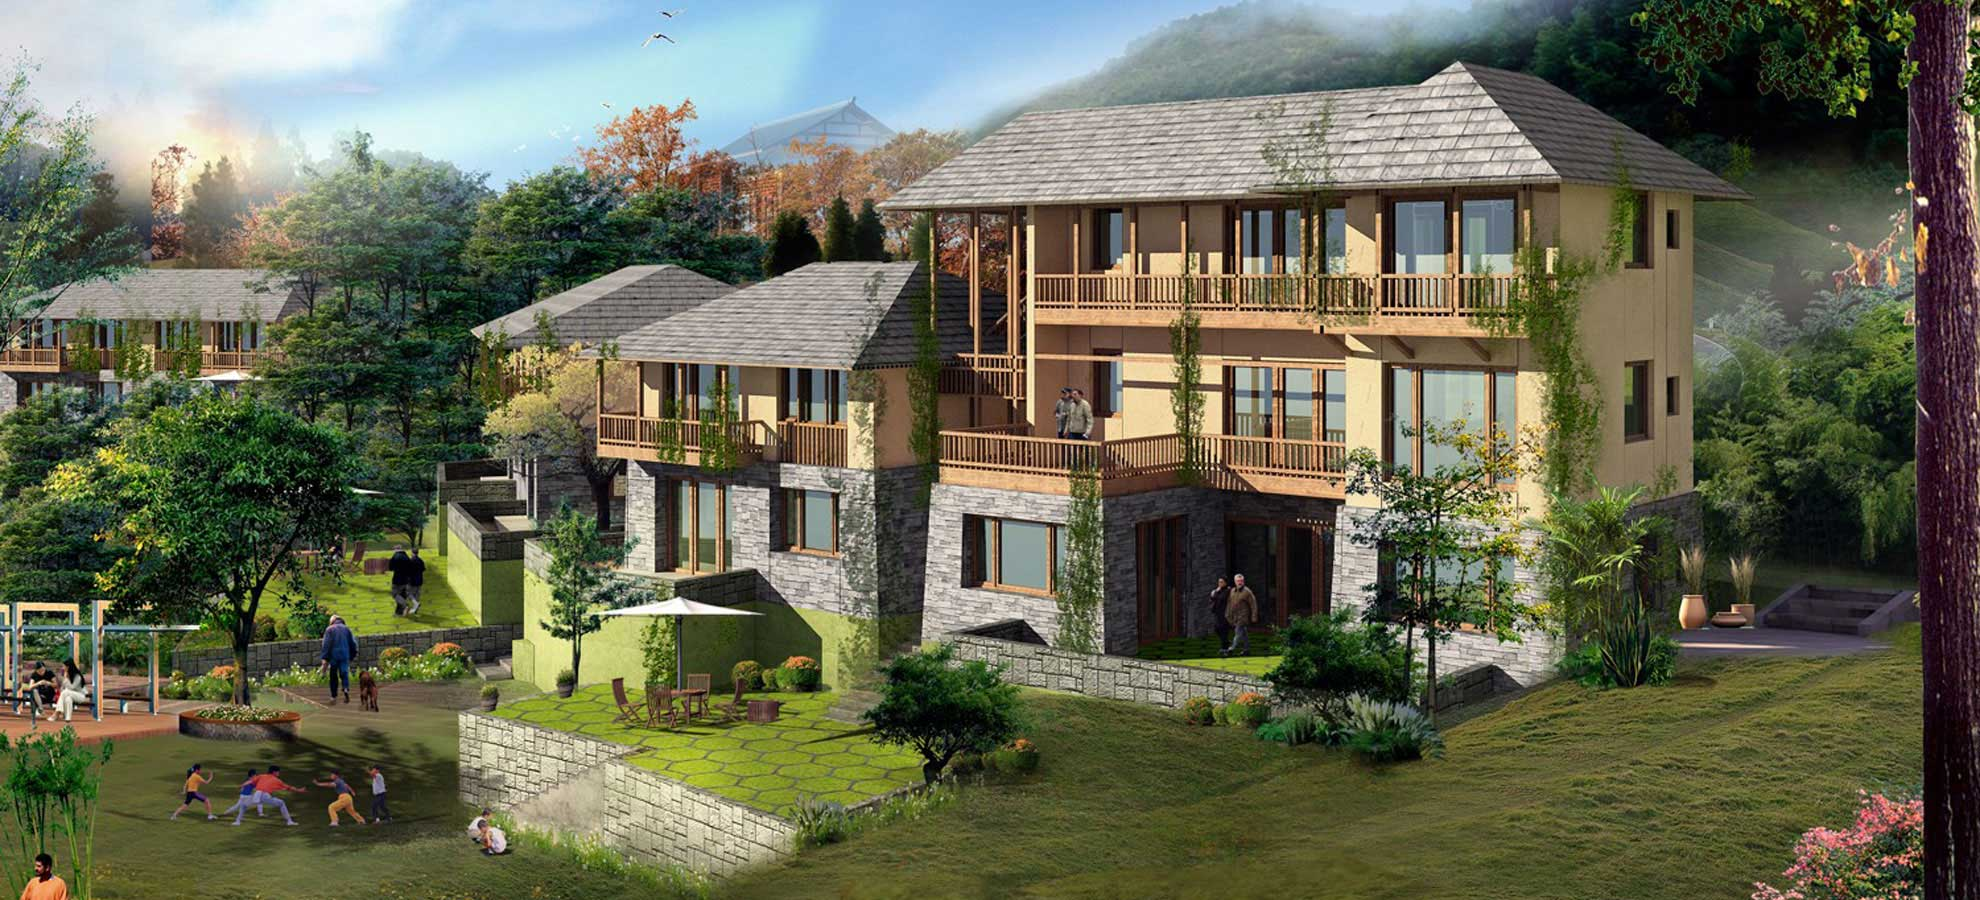 Kaisville Country Homes/Villas in Himachal, Kullu - Manali